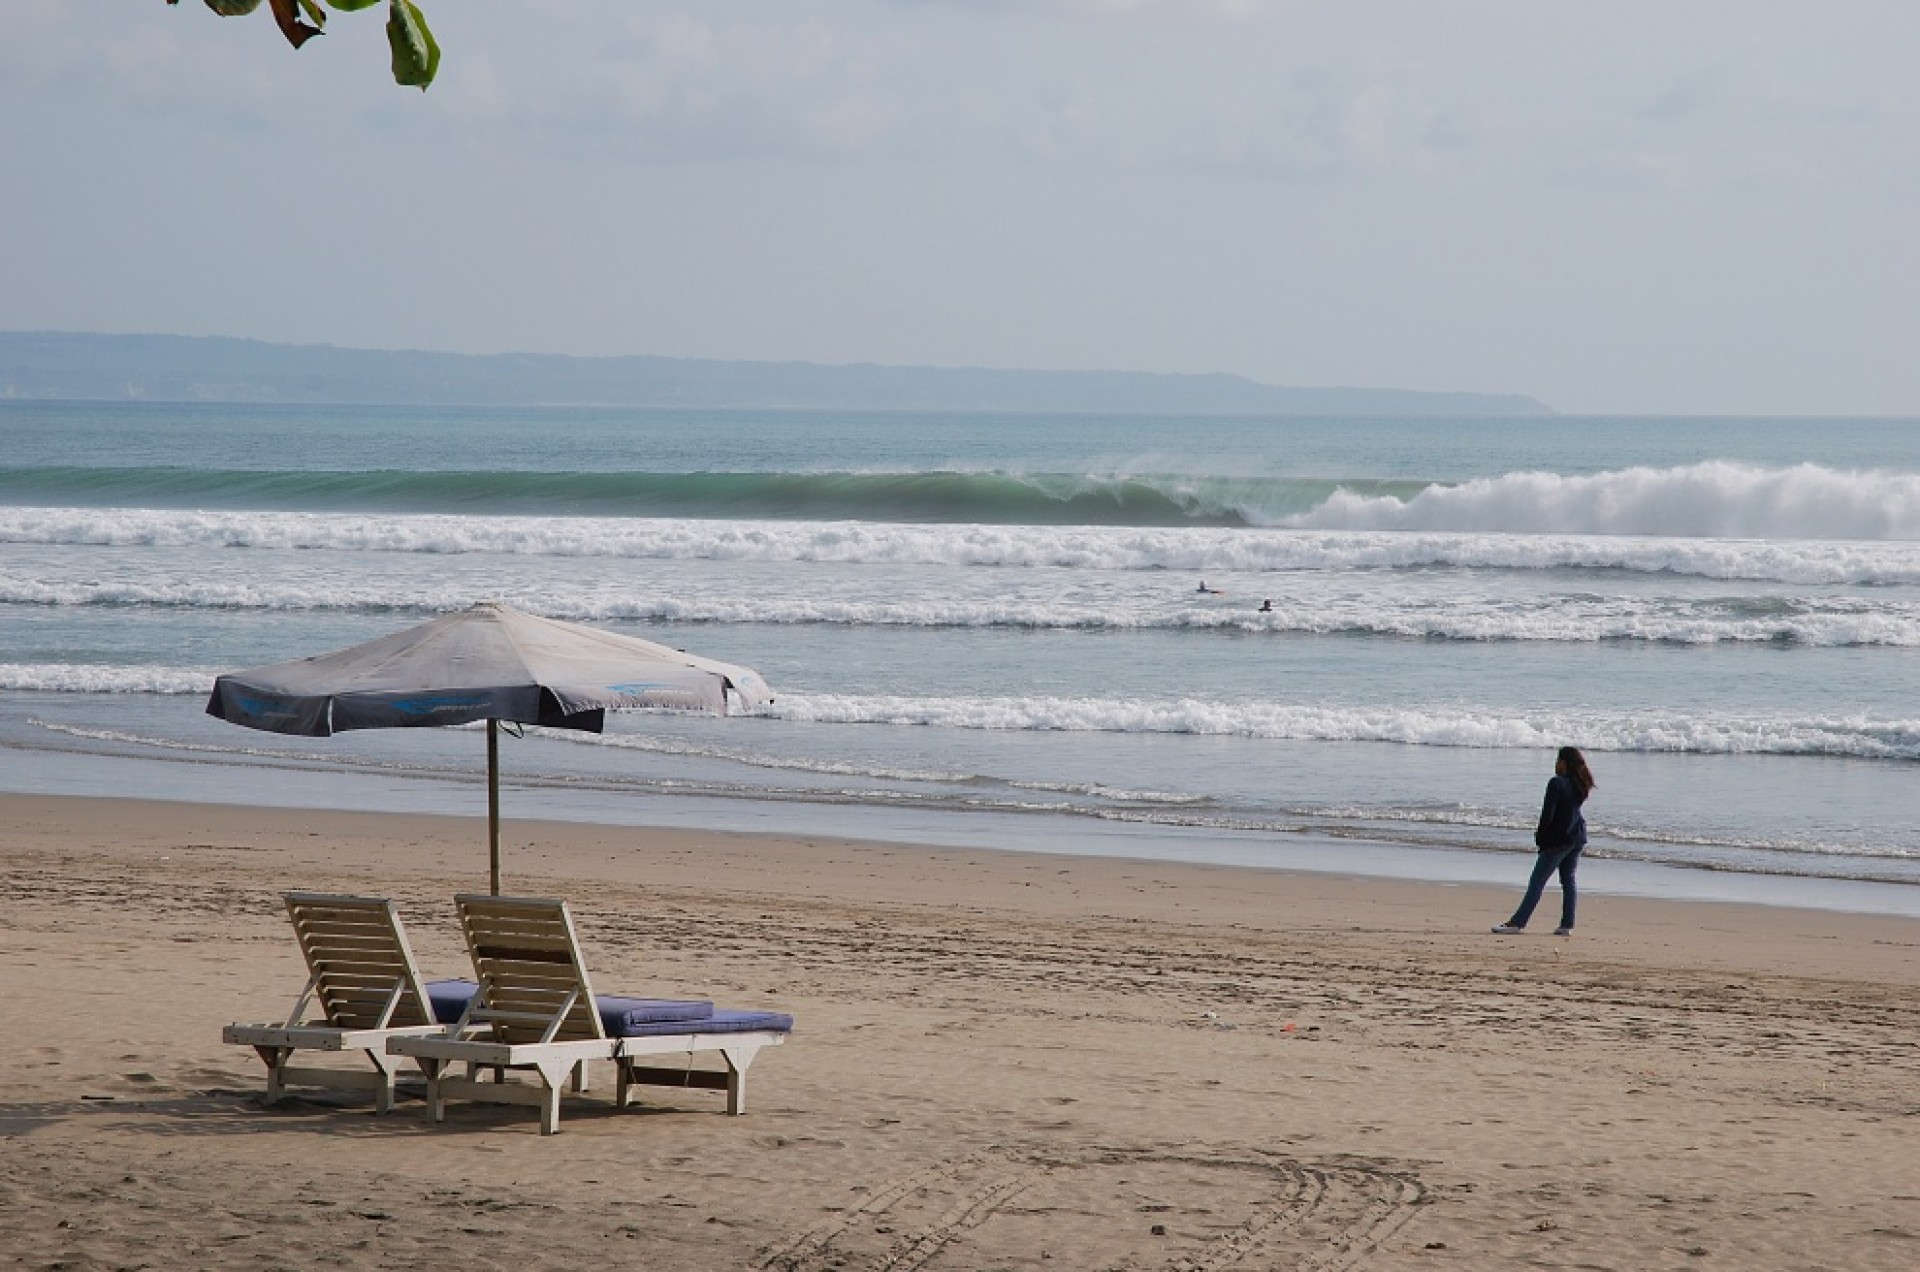 Jason's photo of Kuta Beach